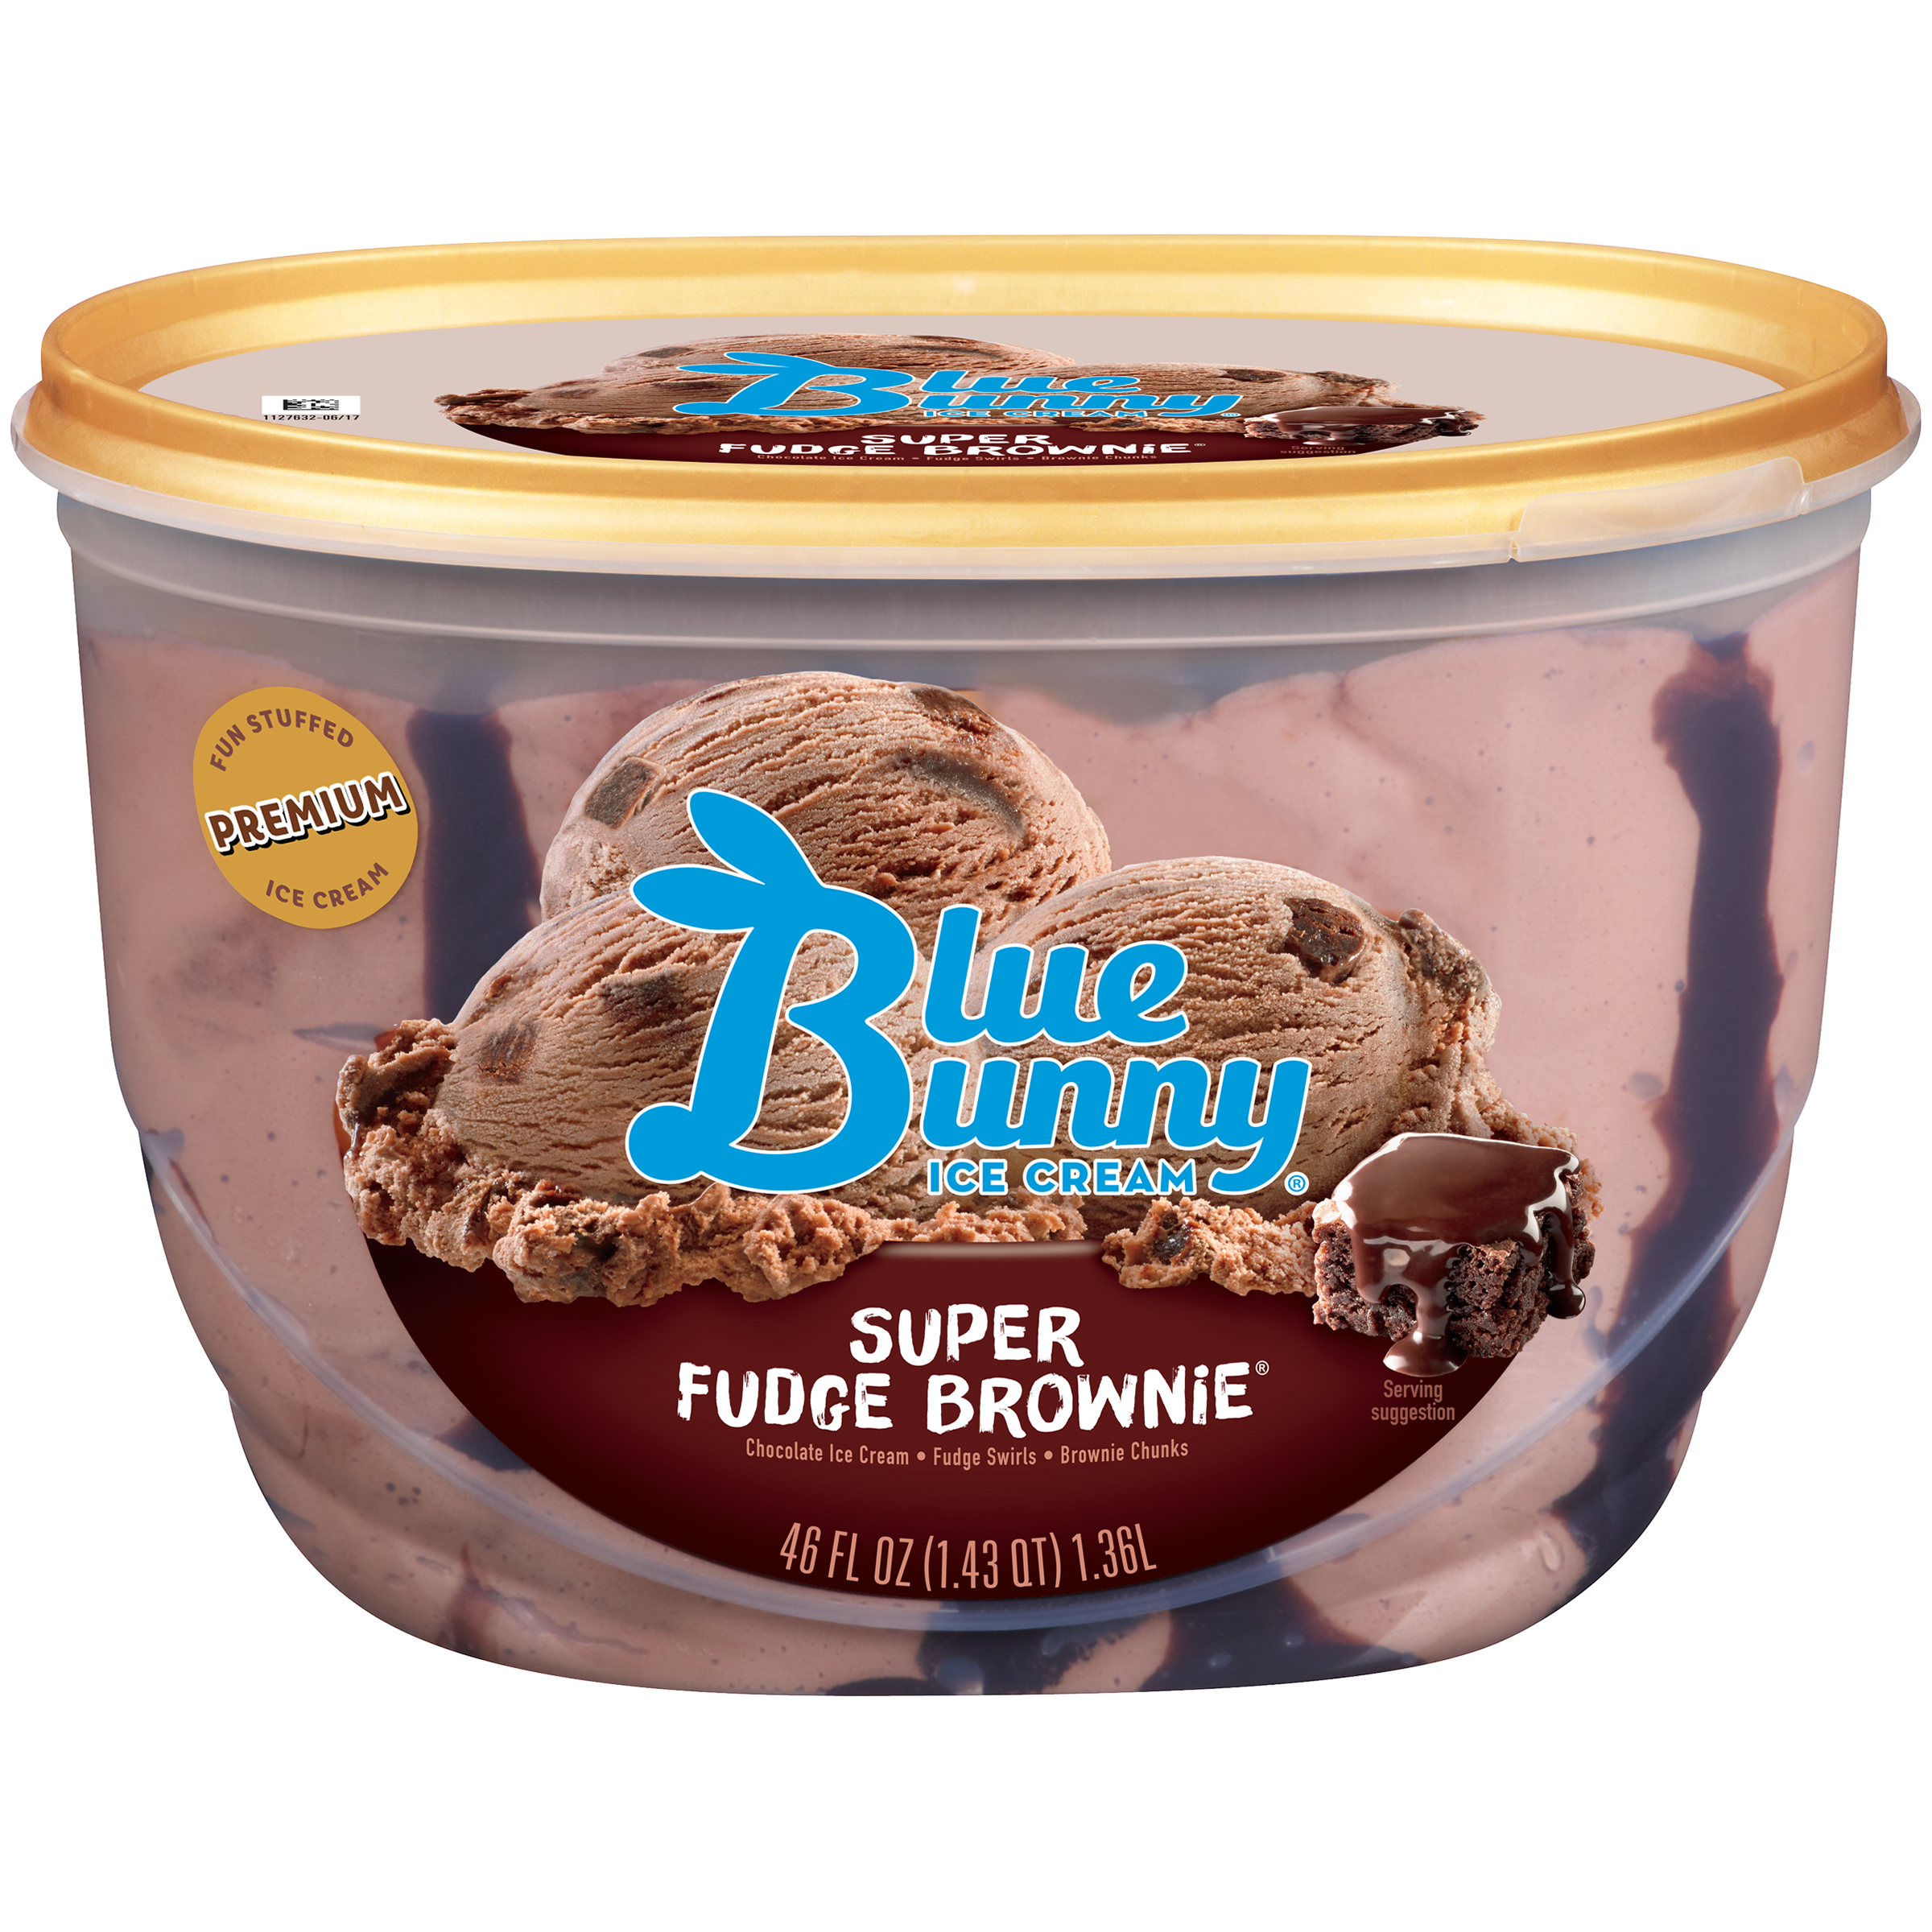 Blue Bunny Super Fudge Brownie Ice Cream, 46 fl oz